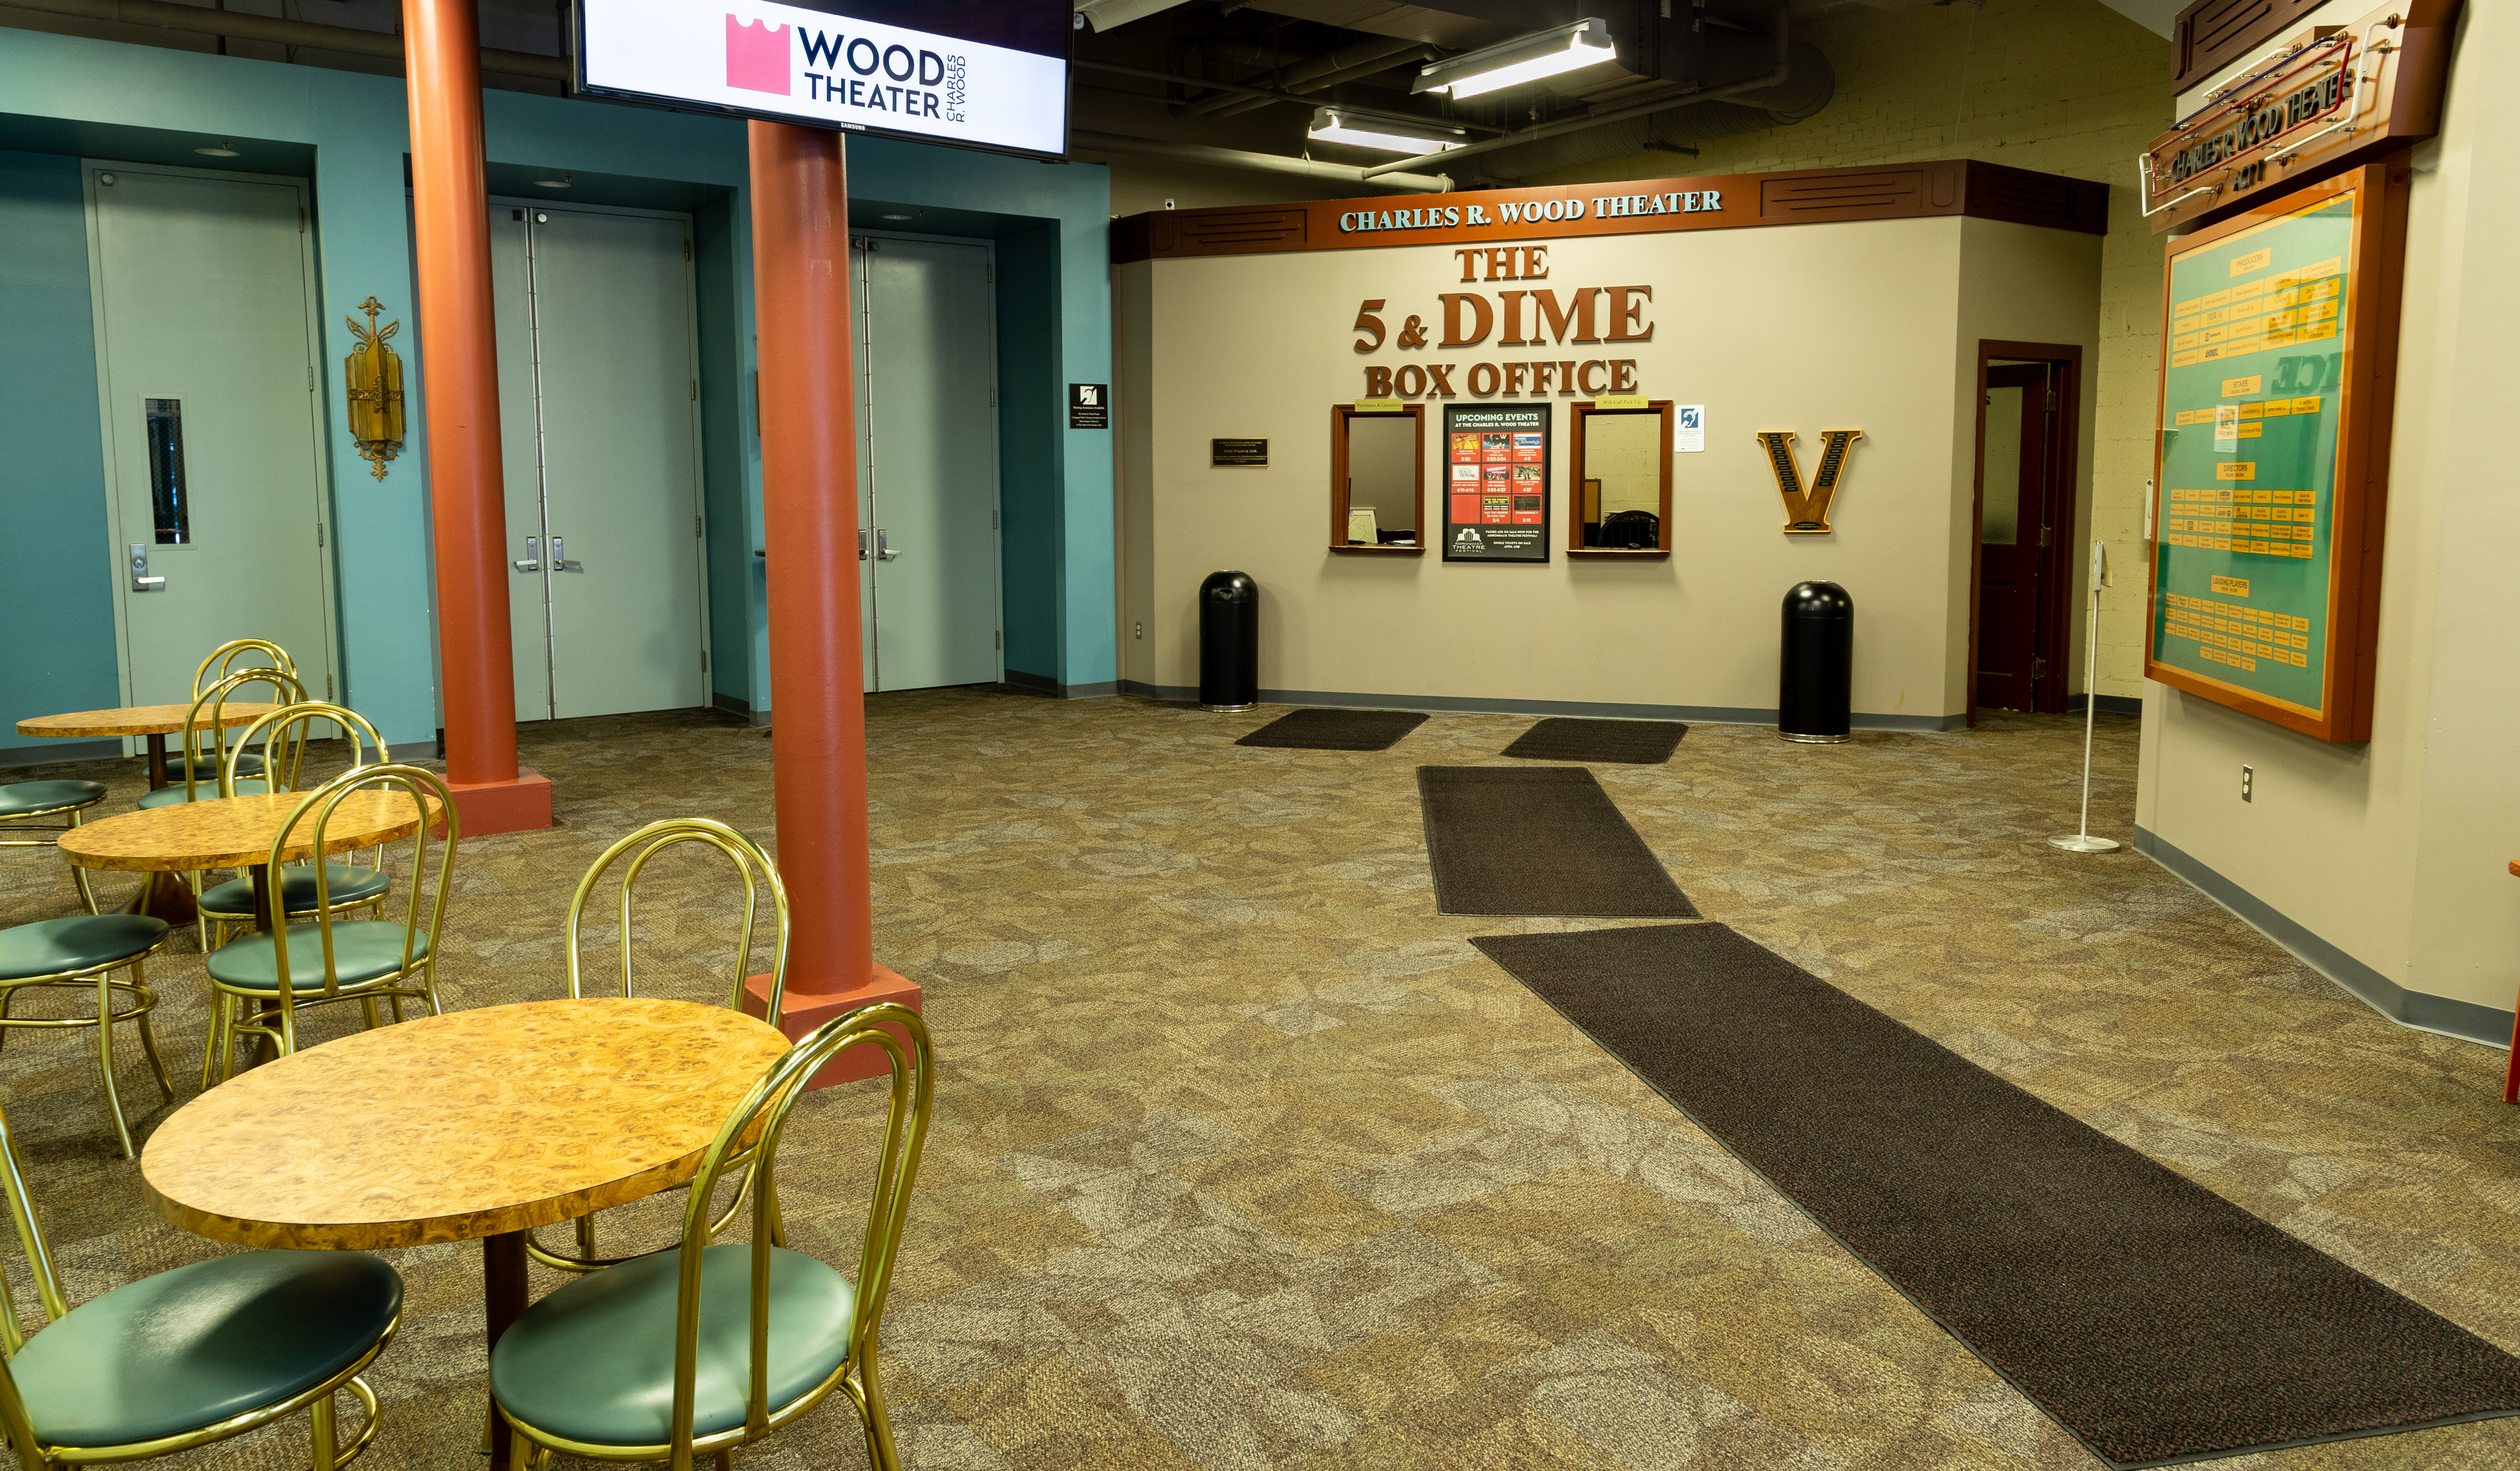 Wood Theater Outer Lobby